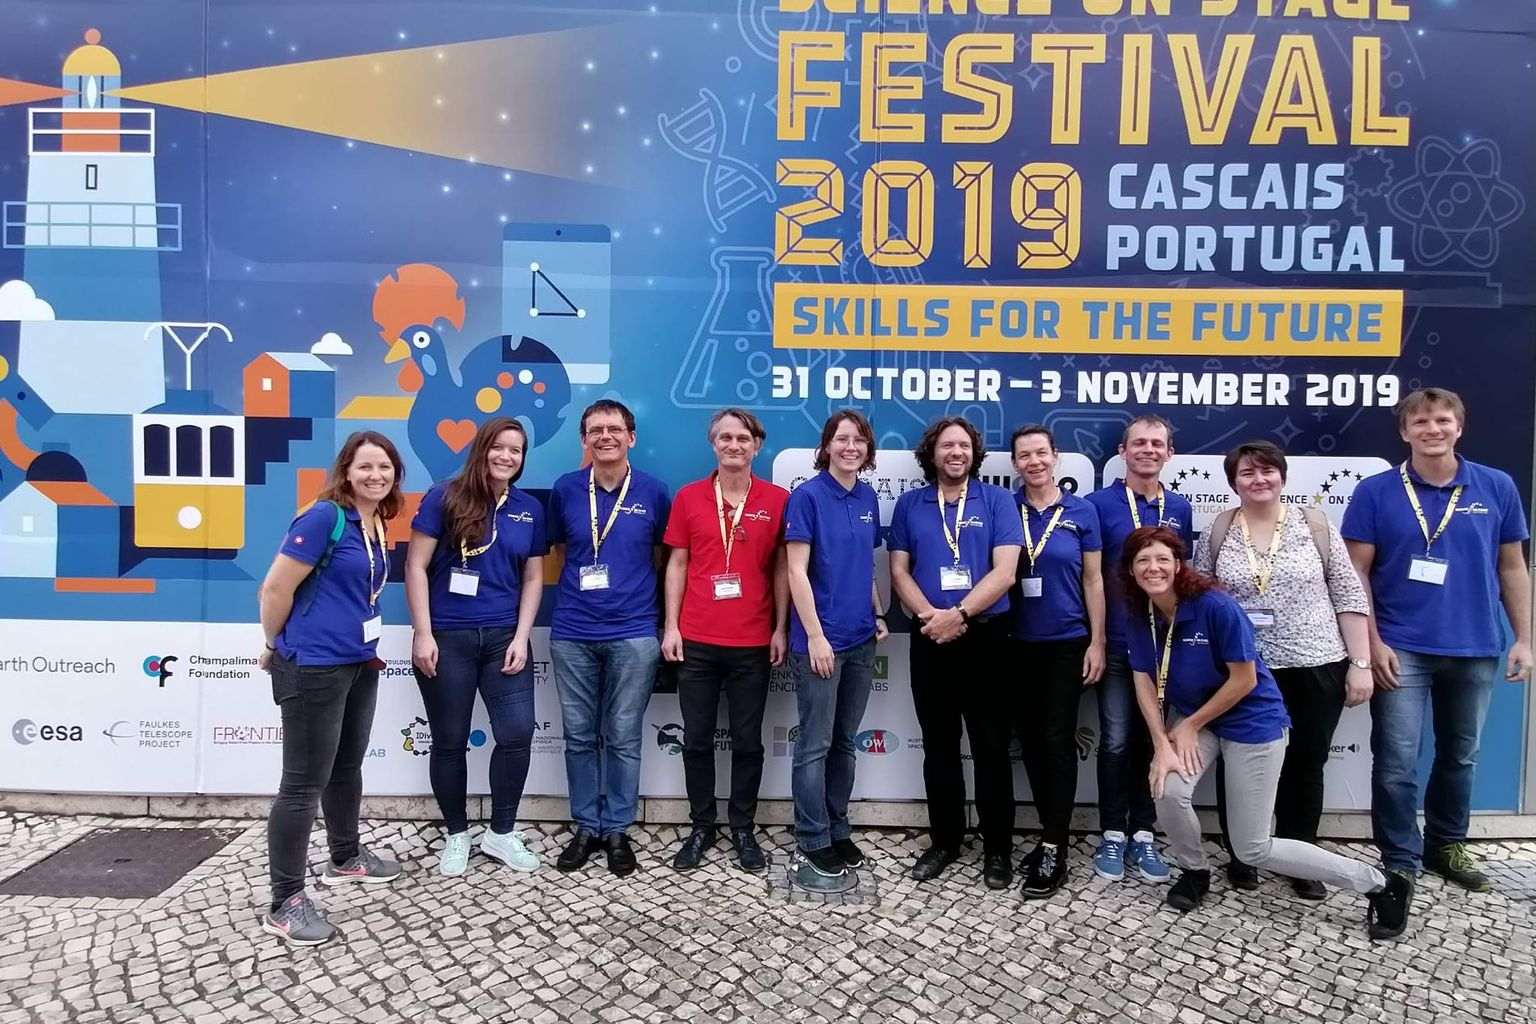 Festival Science on Stage – Cascais 2019